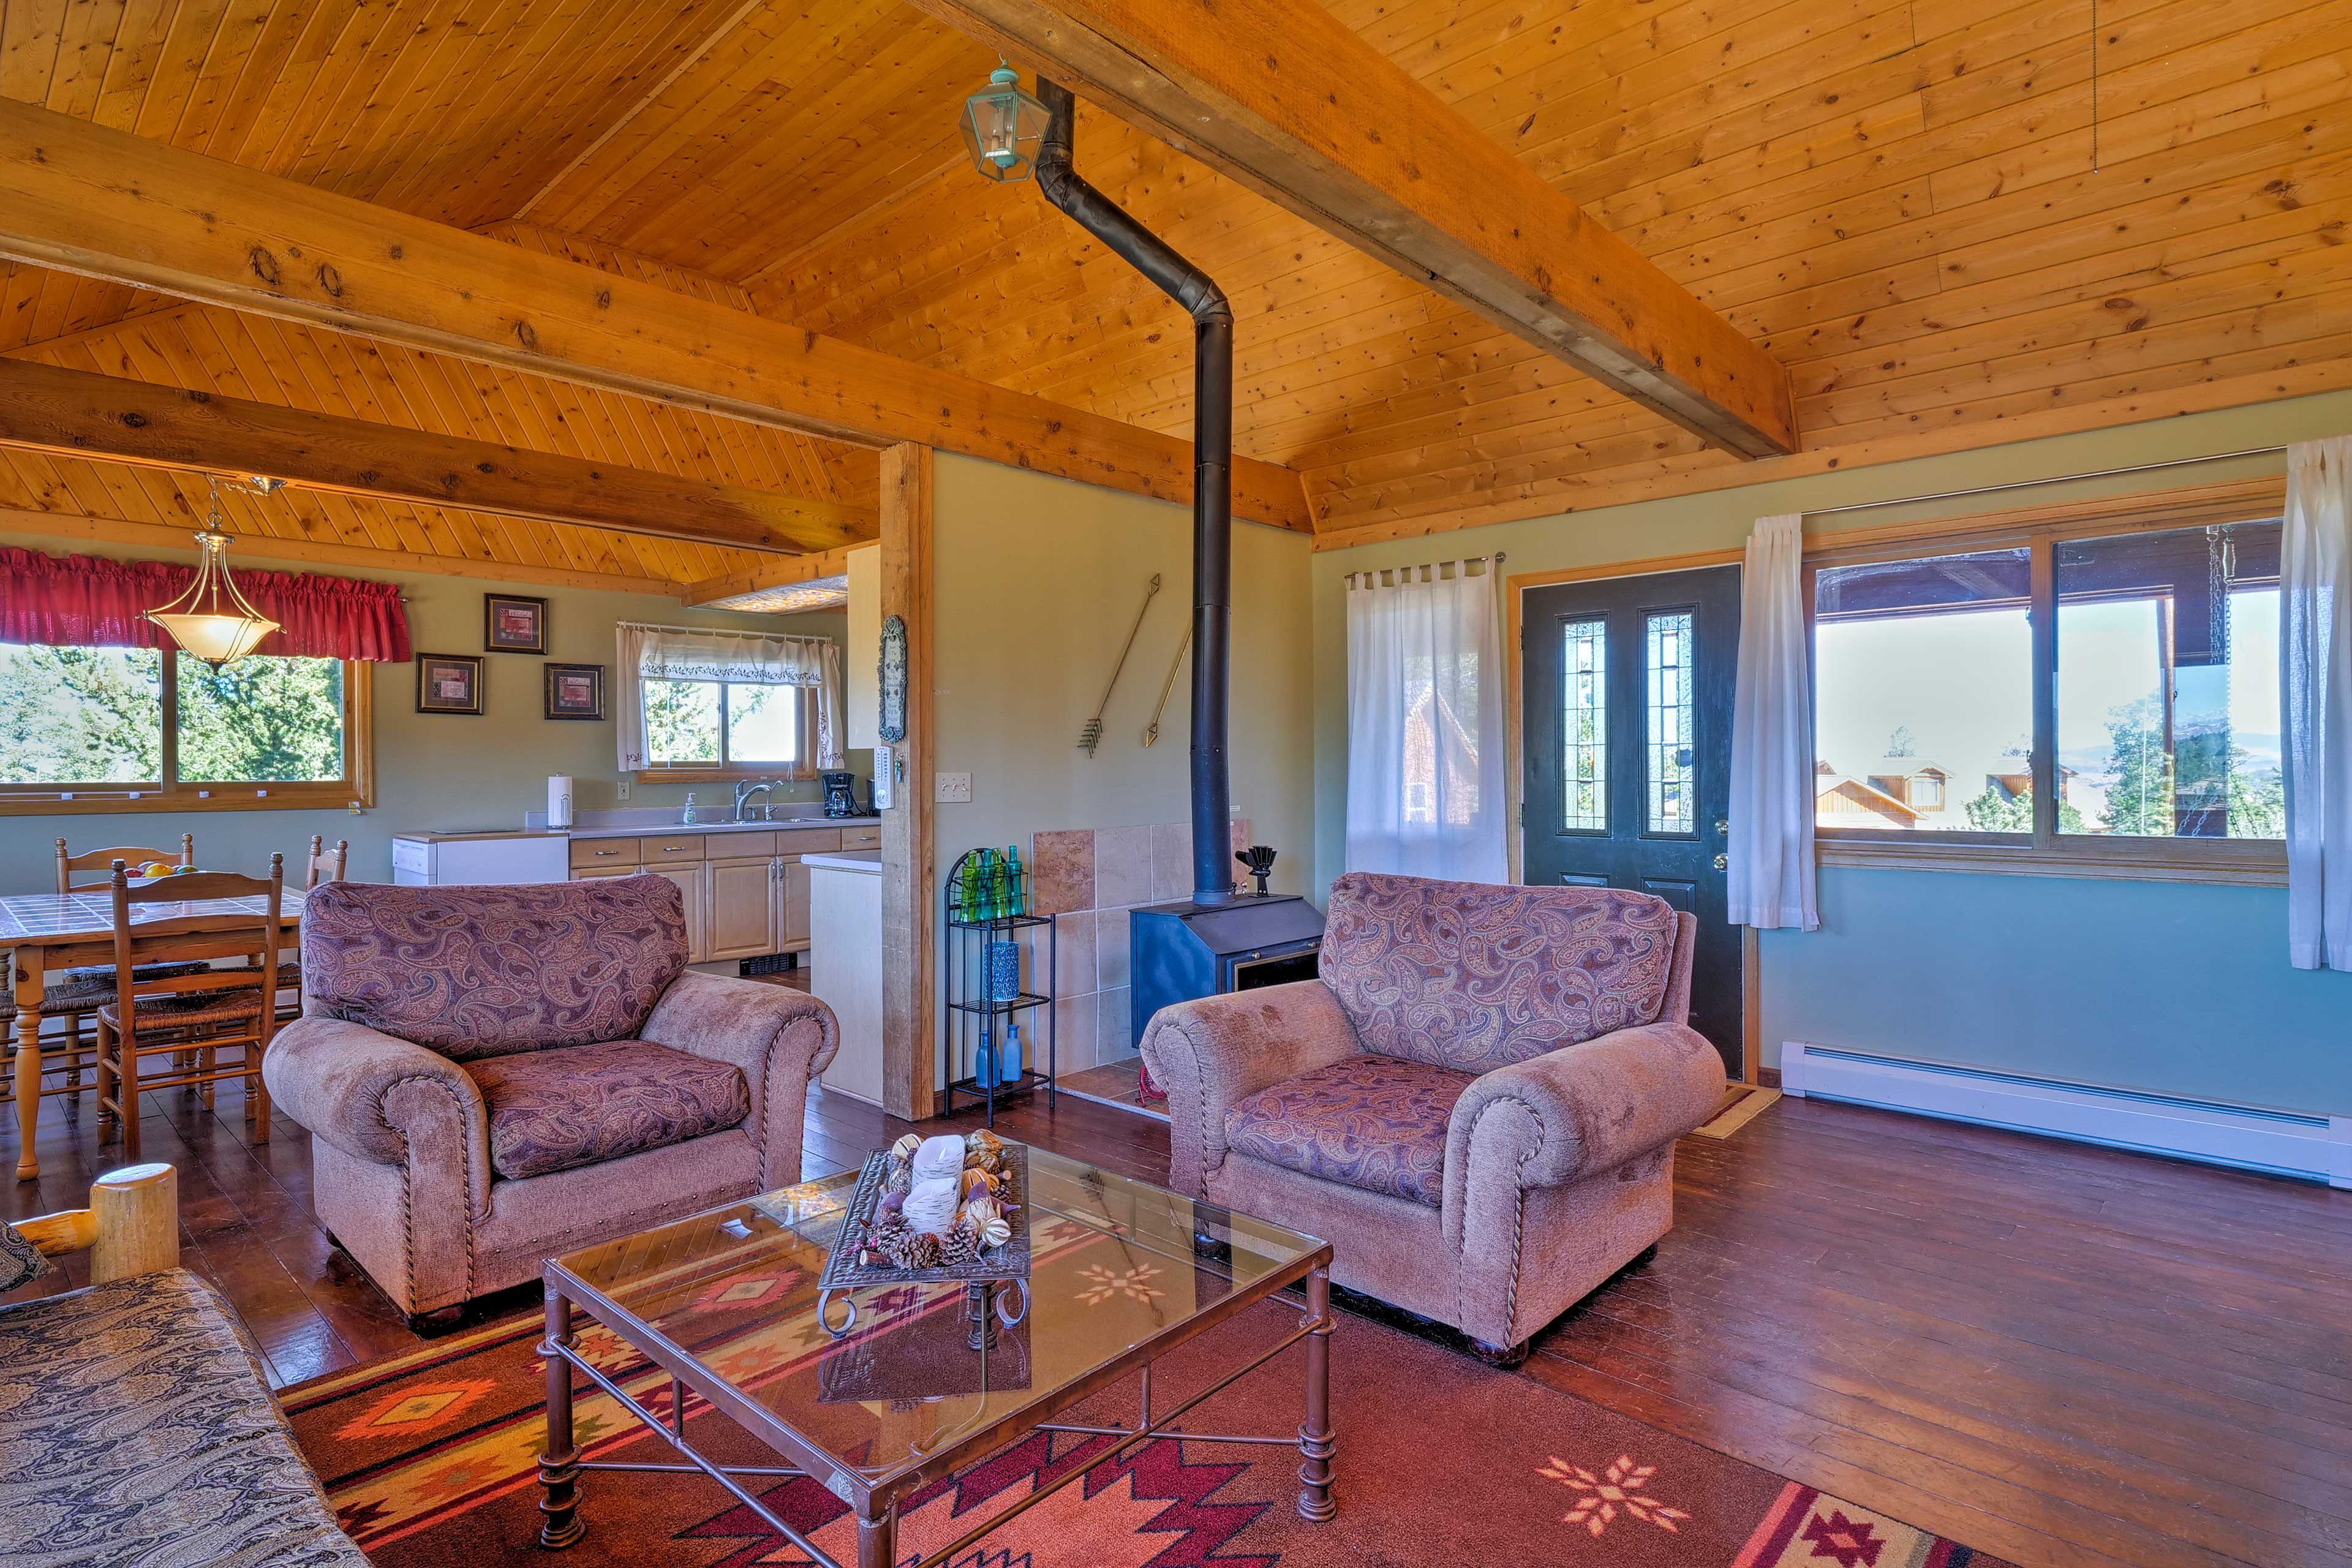 The living area & kitchen share an open floor plan.